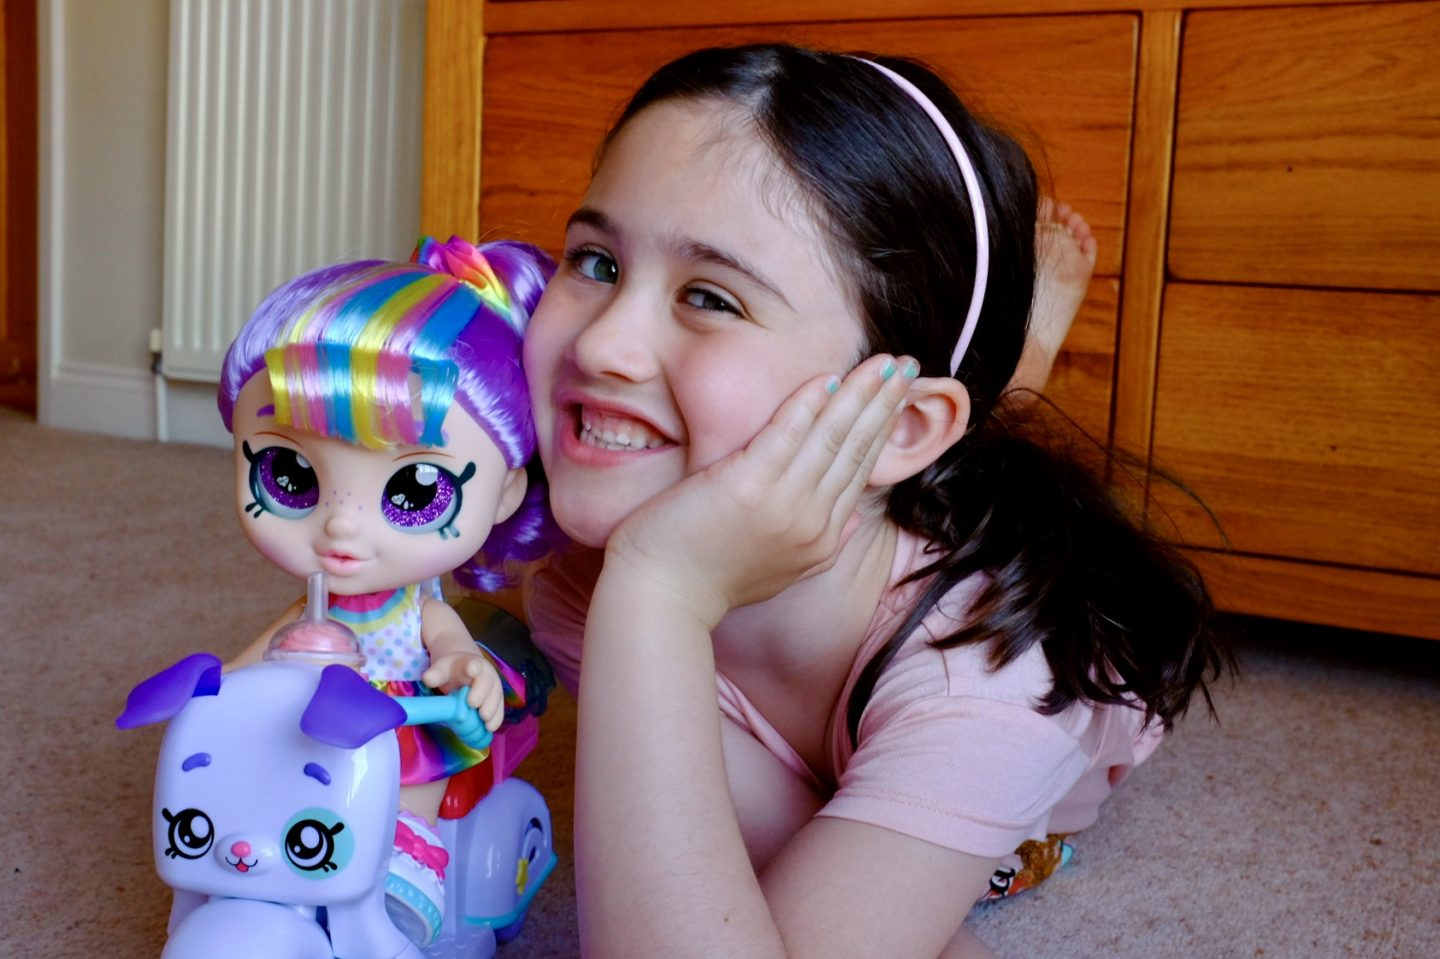 Kindi Kids Rainbow Kate Doll & Puppy Petkin Delivery Scooter REVIEW | AD